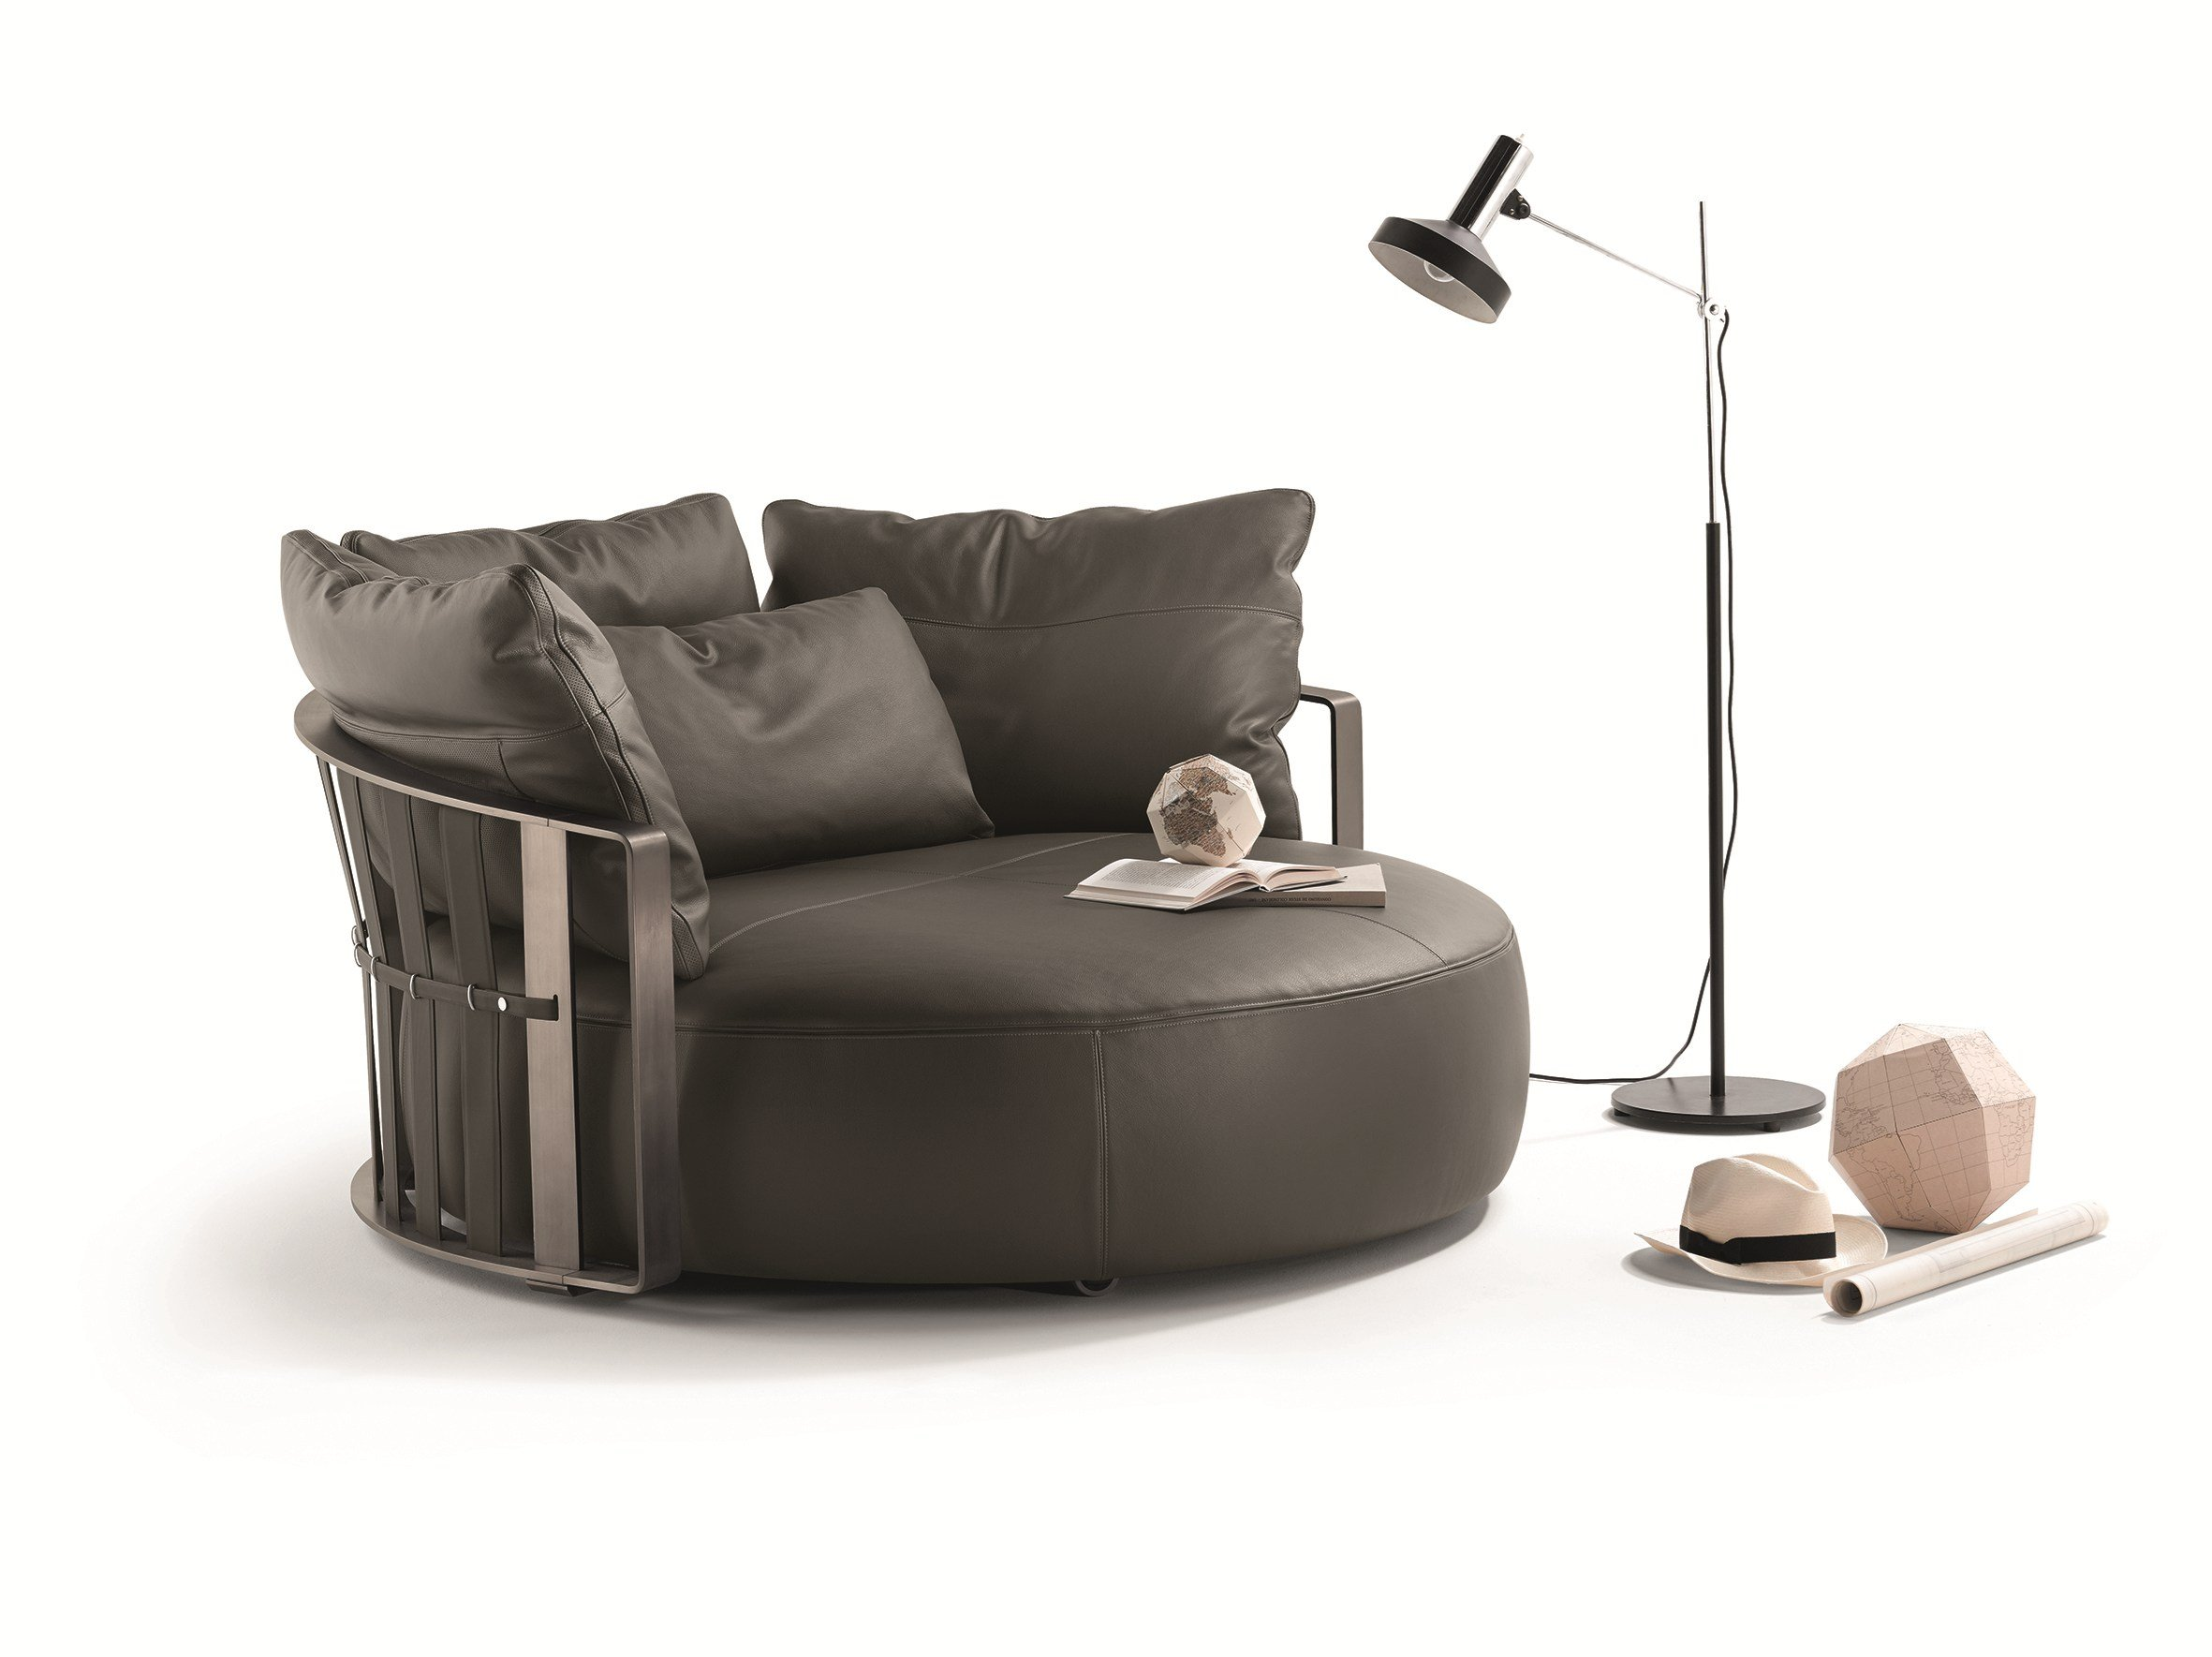 round sofa scarlett by poltrona frau design jean marie massaud. Black Bedroom Furniture Sets. Home Design Ideas